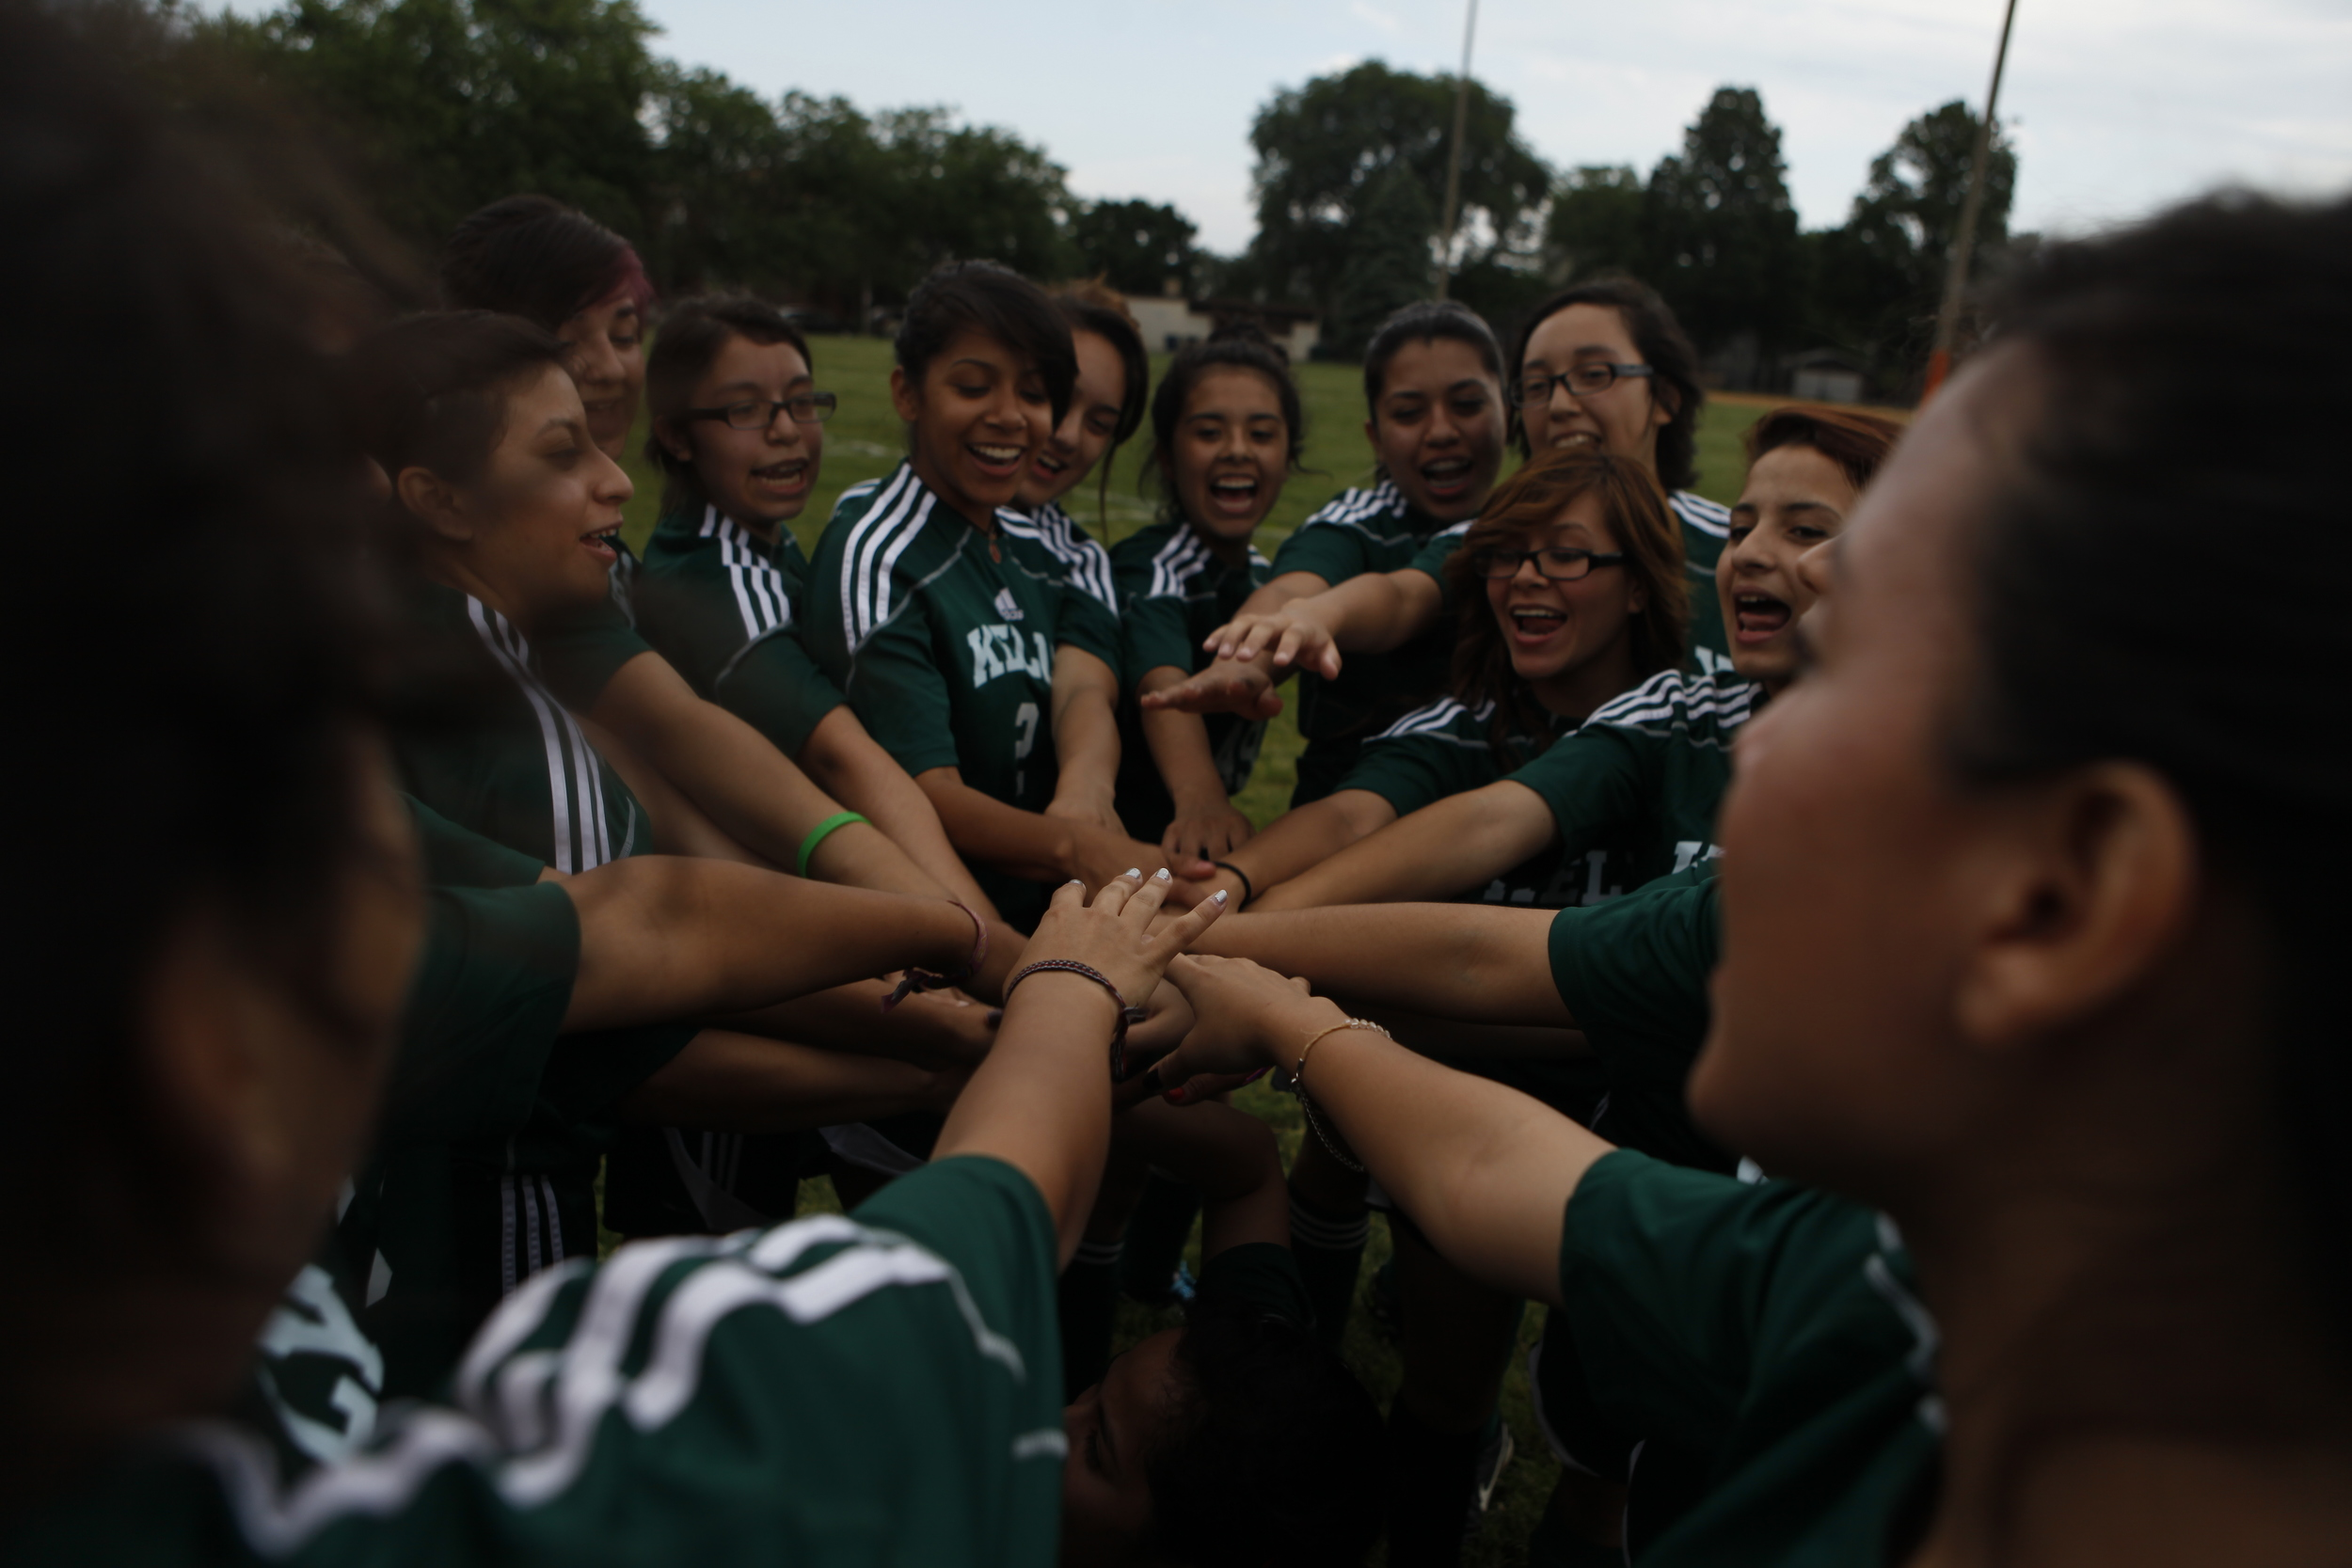 The Kelly High School girls varsity soccer team gathered before practice across from the Chicago school on Tuesday, June 11, 2013.